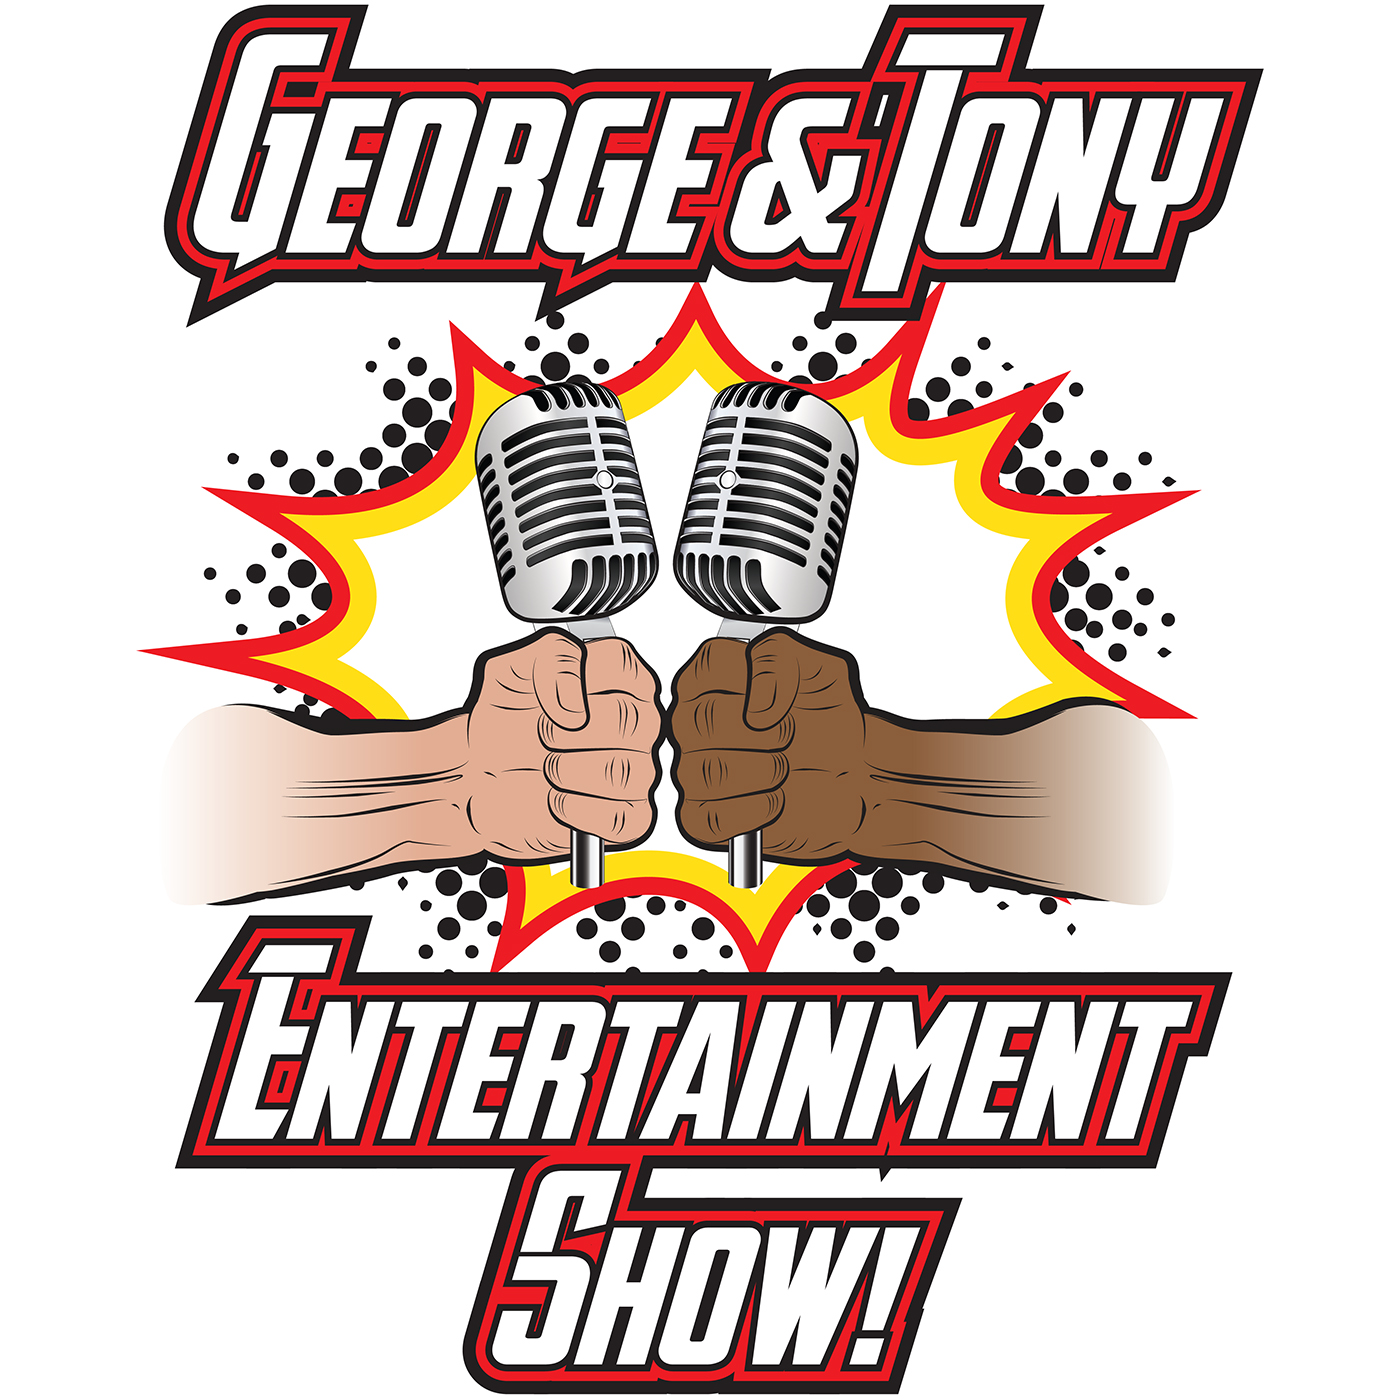 George and Tony Entertainment Show #49